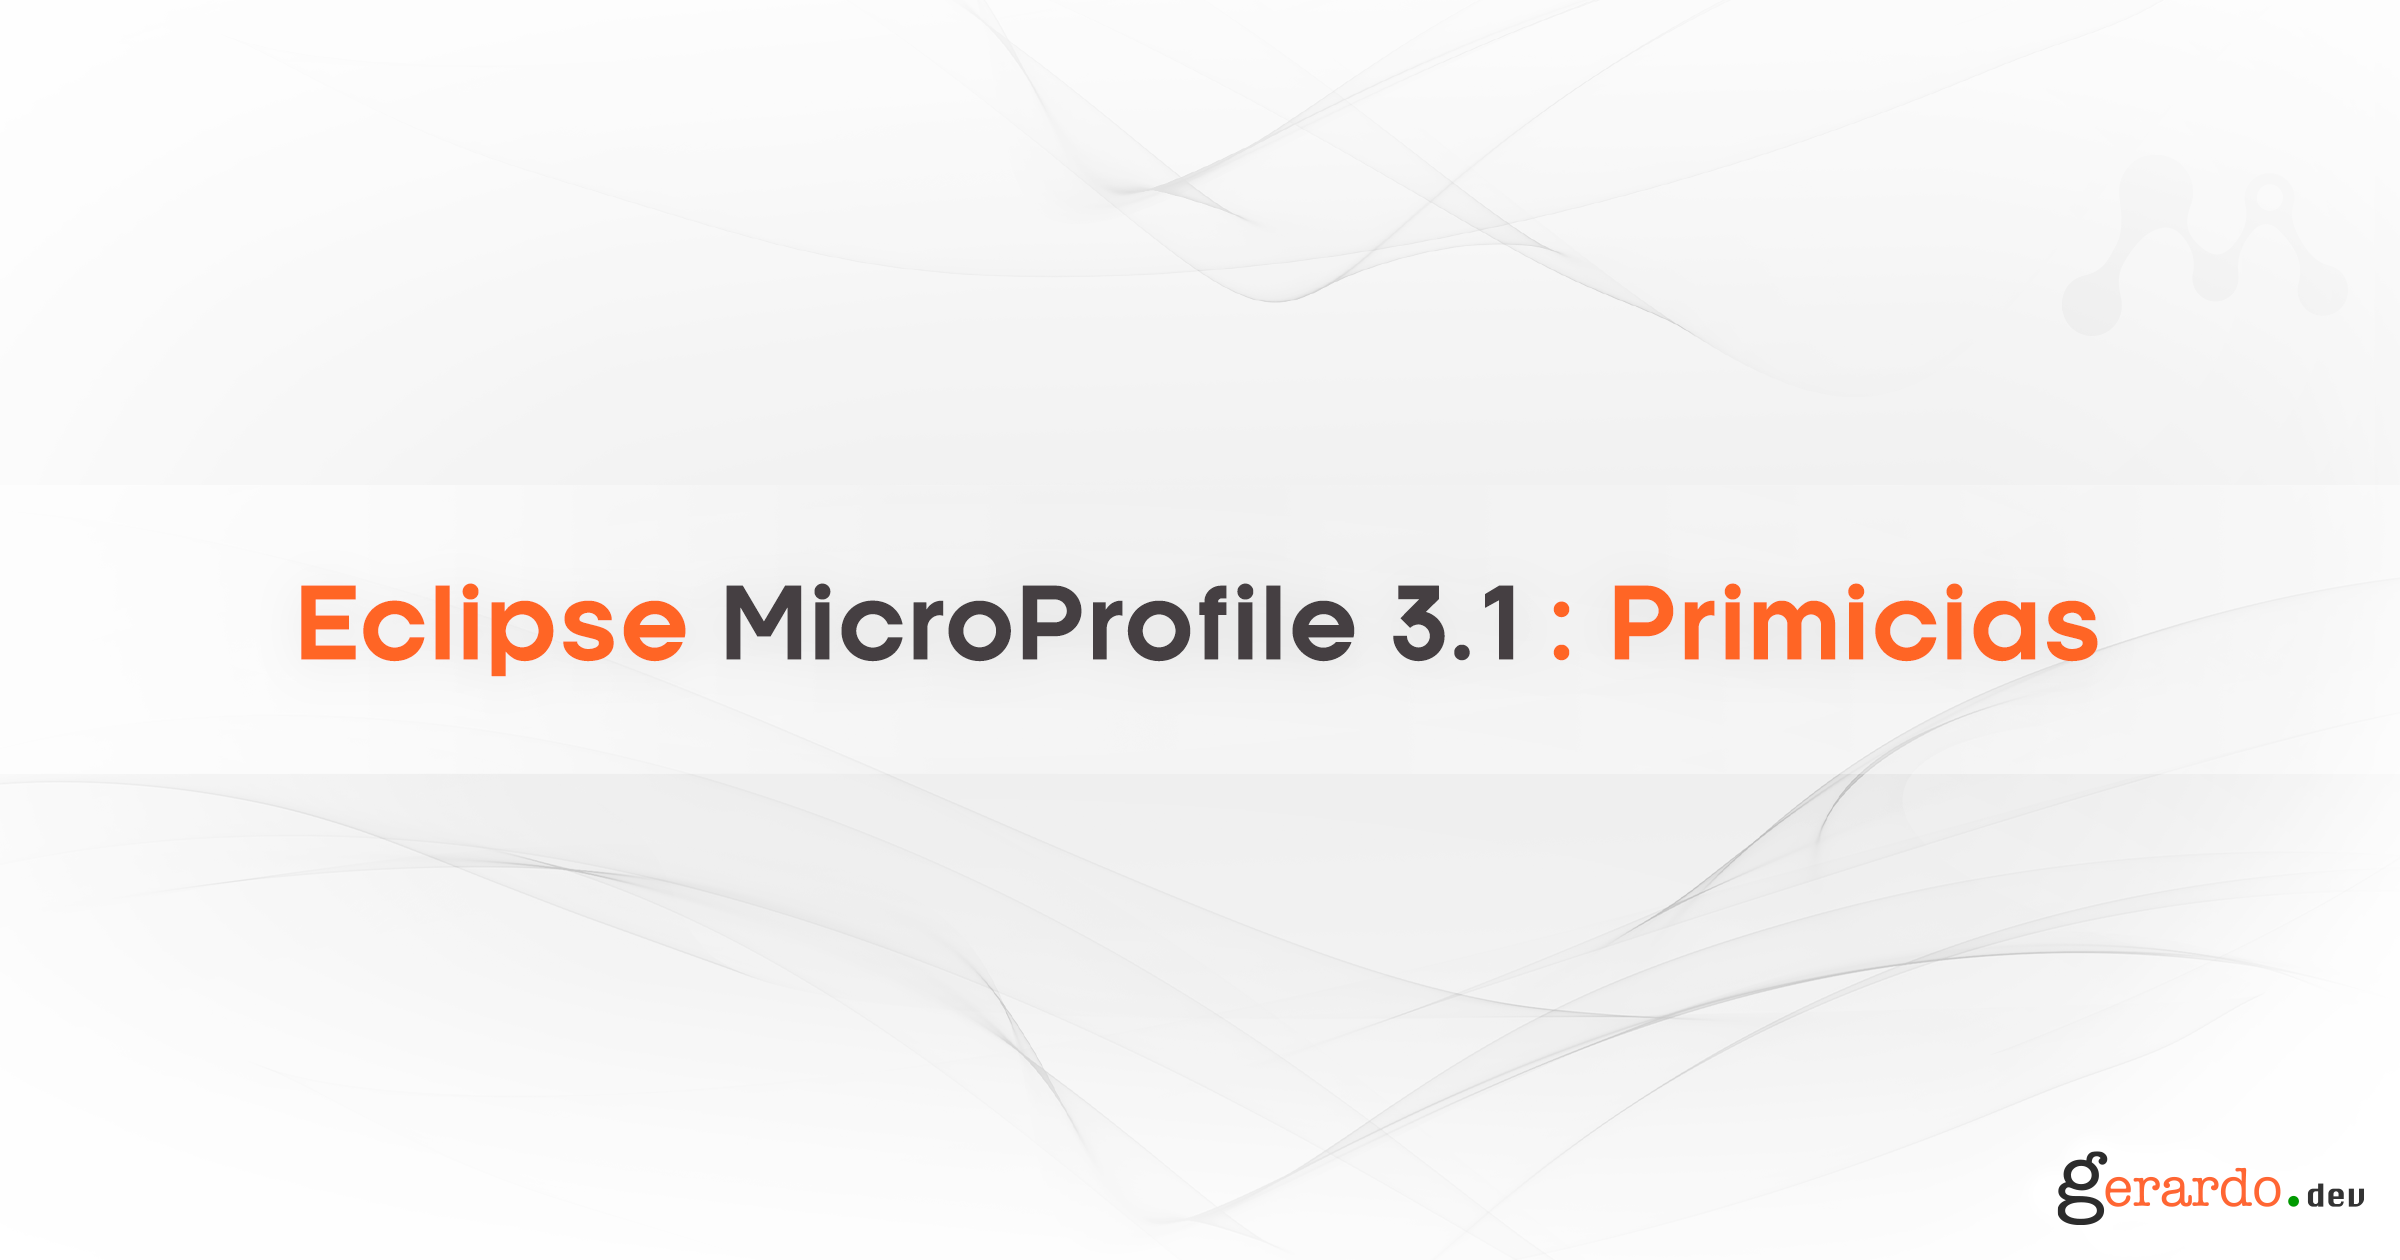 Eclipse MicroProfile 3.1: Primicias